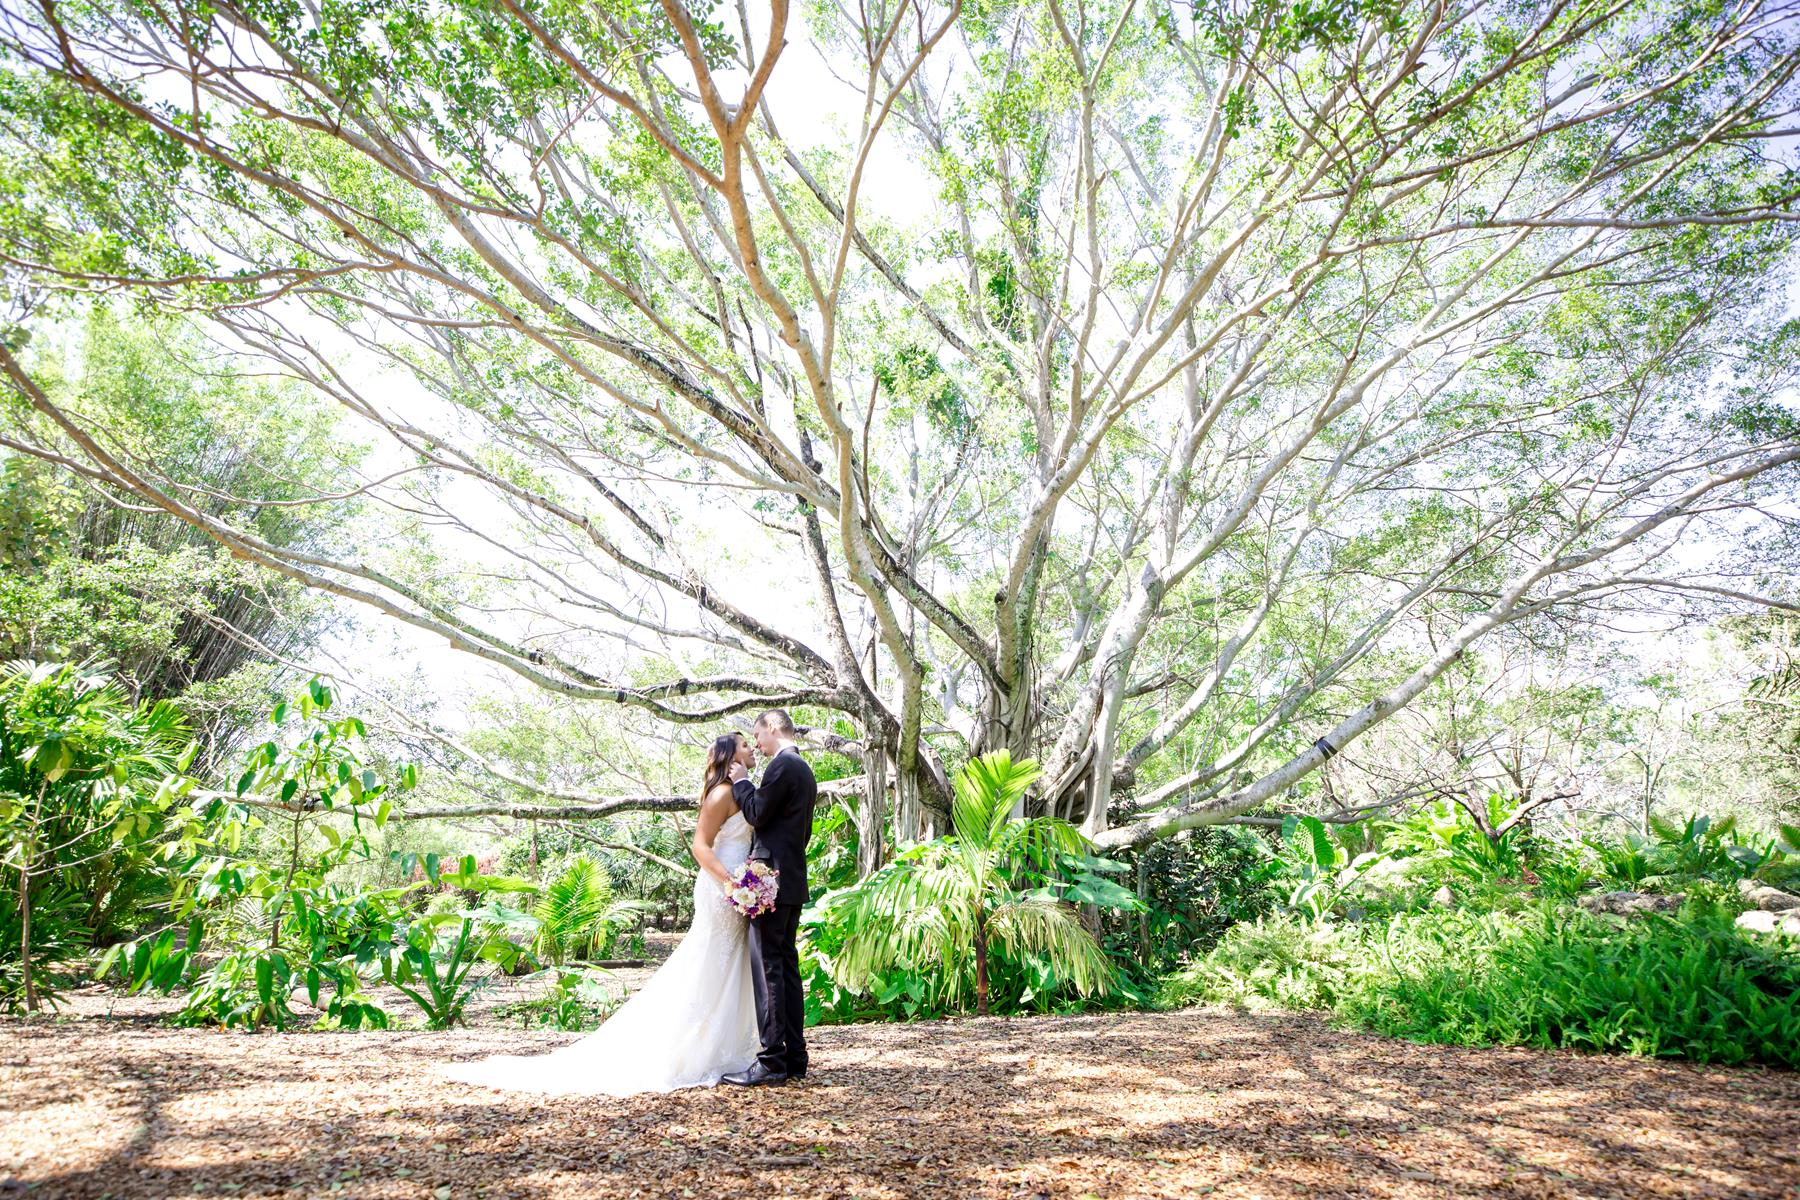 featured_franchesca-fread-photography-south-florida-and-destination-wedding-portrait-lifestyle-photographer08